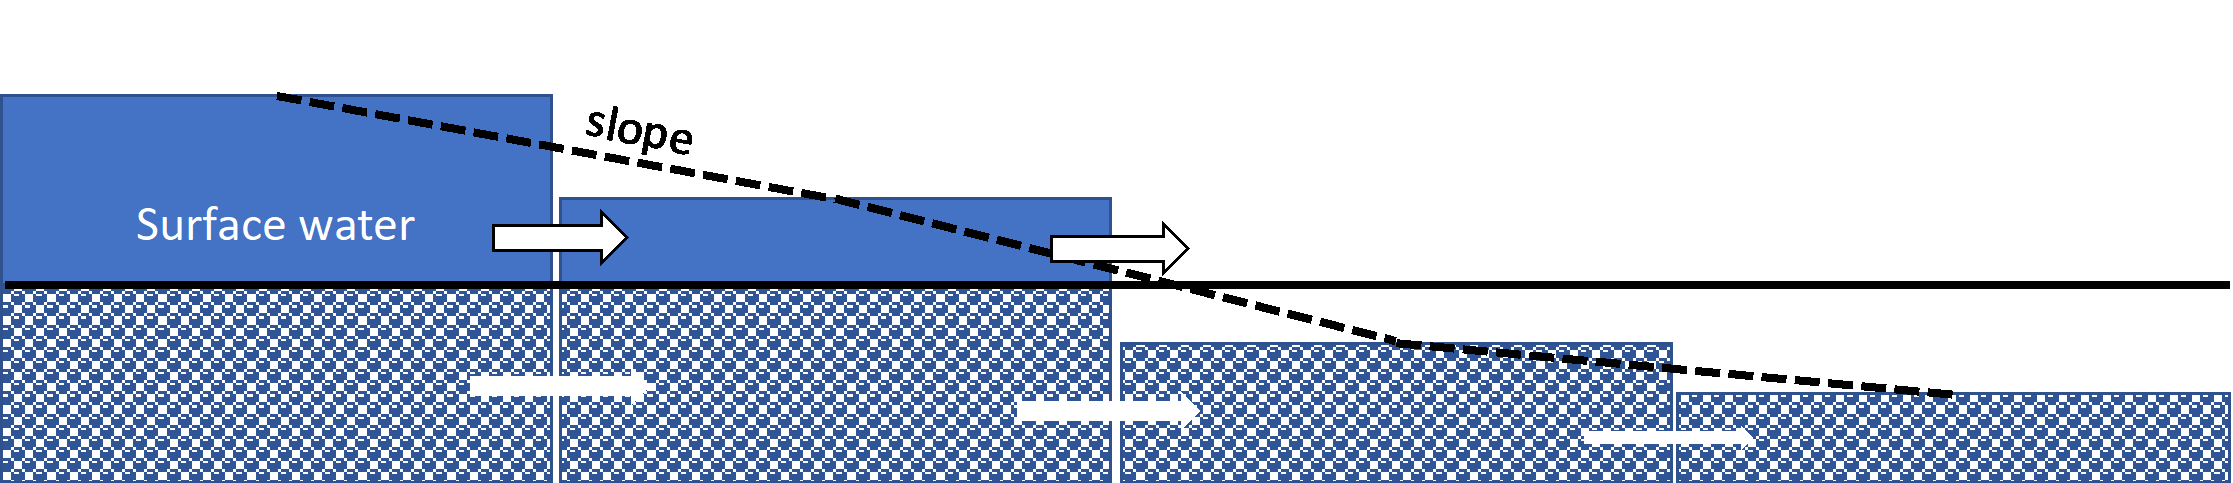 Applications of the interflow layer